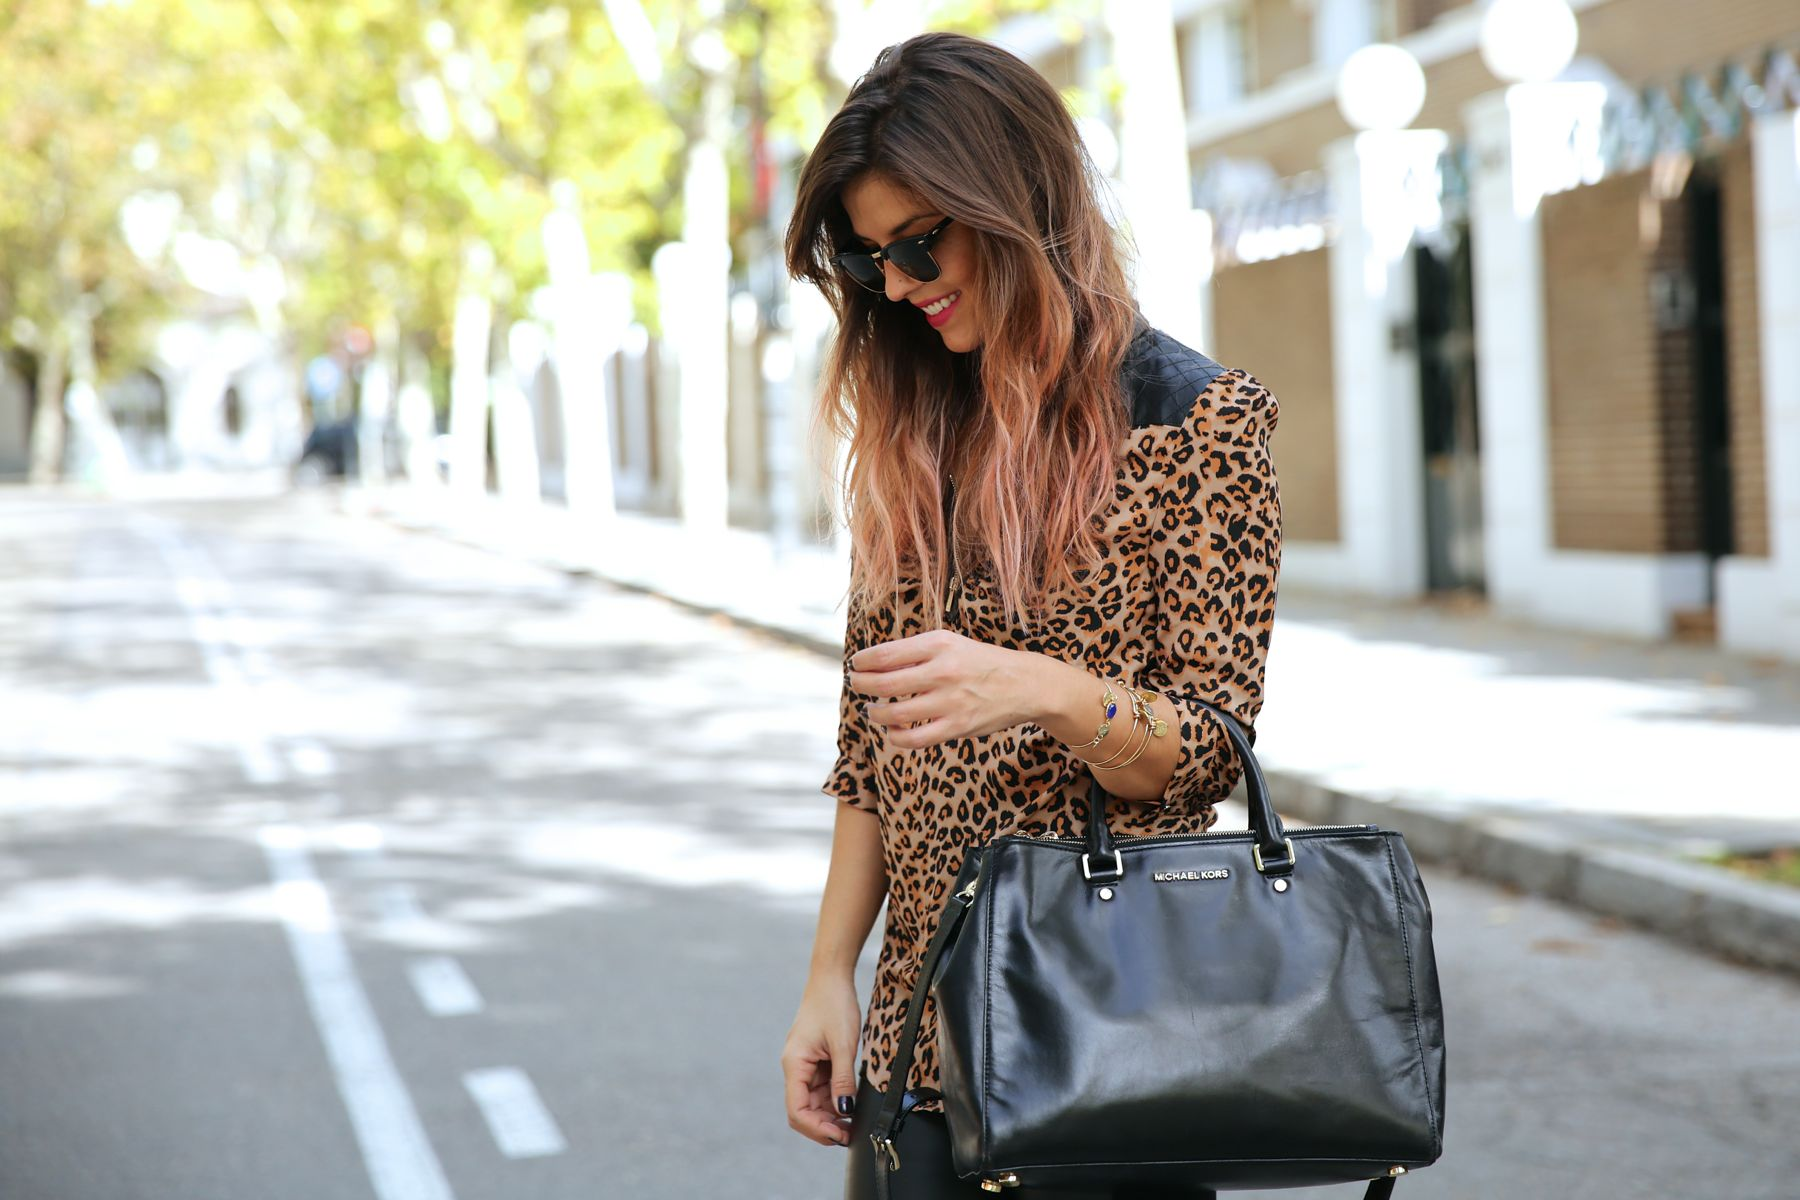 trendy_taste-look-outfit-street_style-ootd-blog-blogger-fashion_spain-moda_españa-leo_print-leopardo-converse-all_star-michael_kors-leggings-clubmaster-6